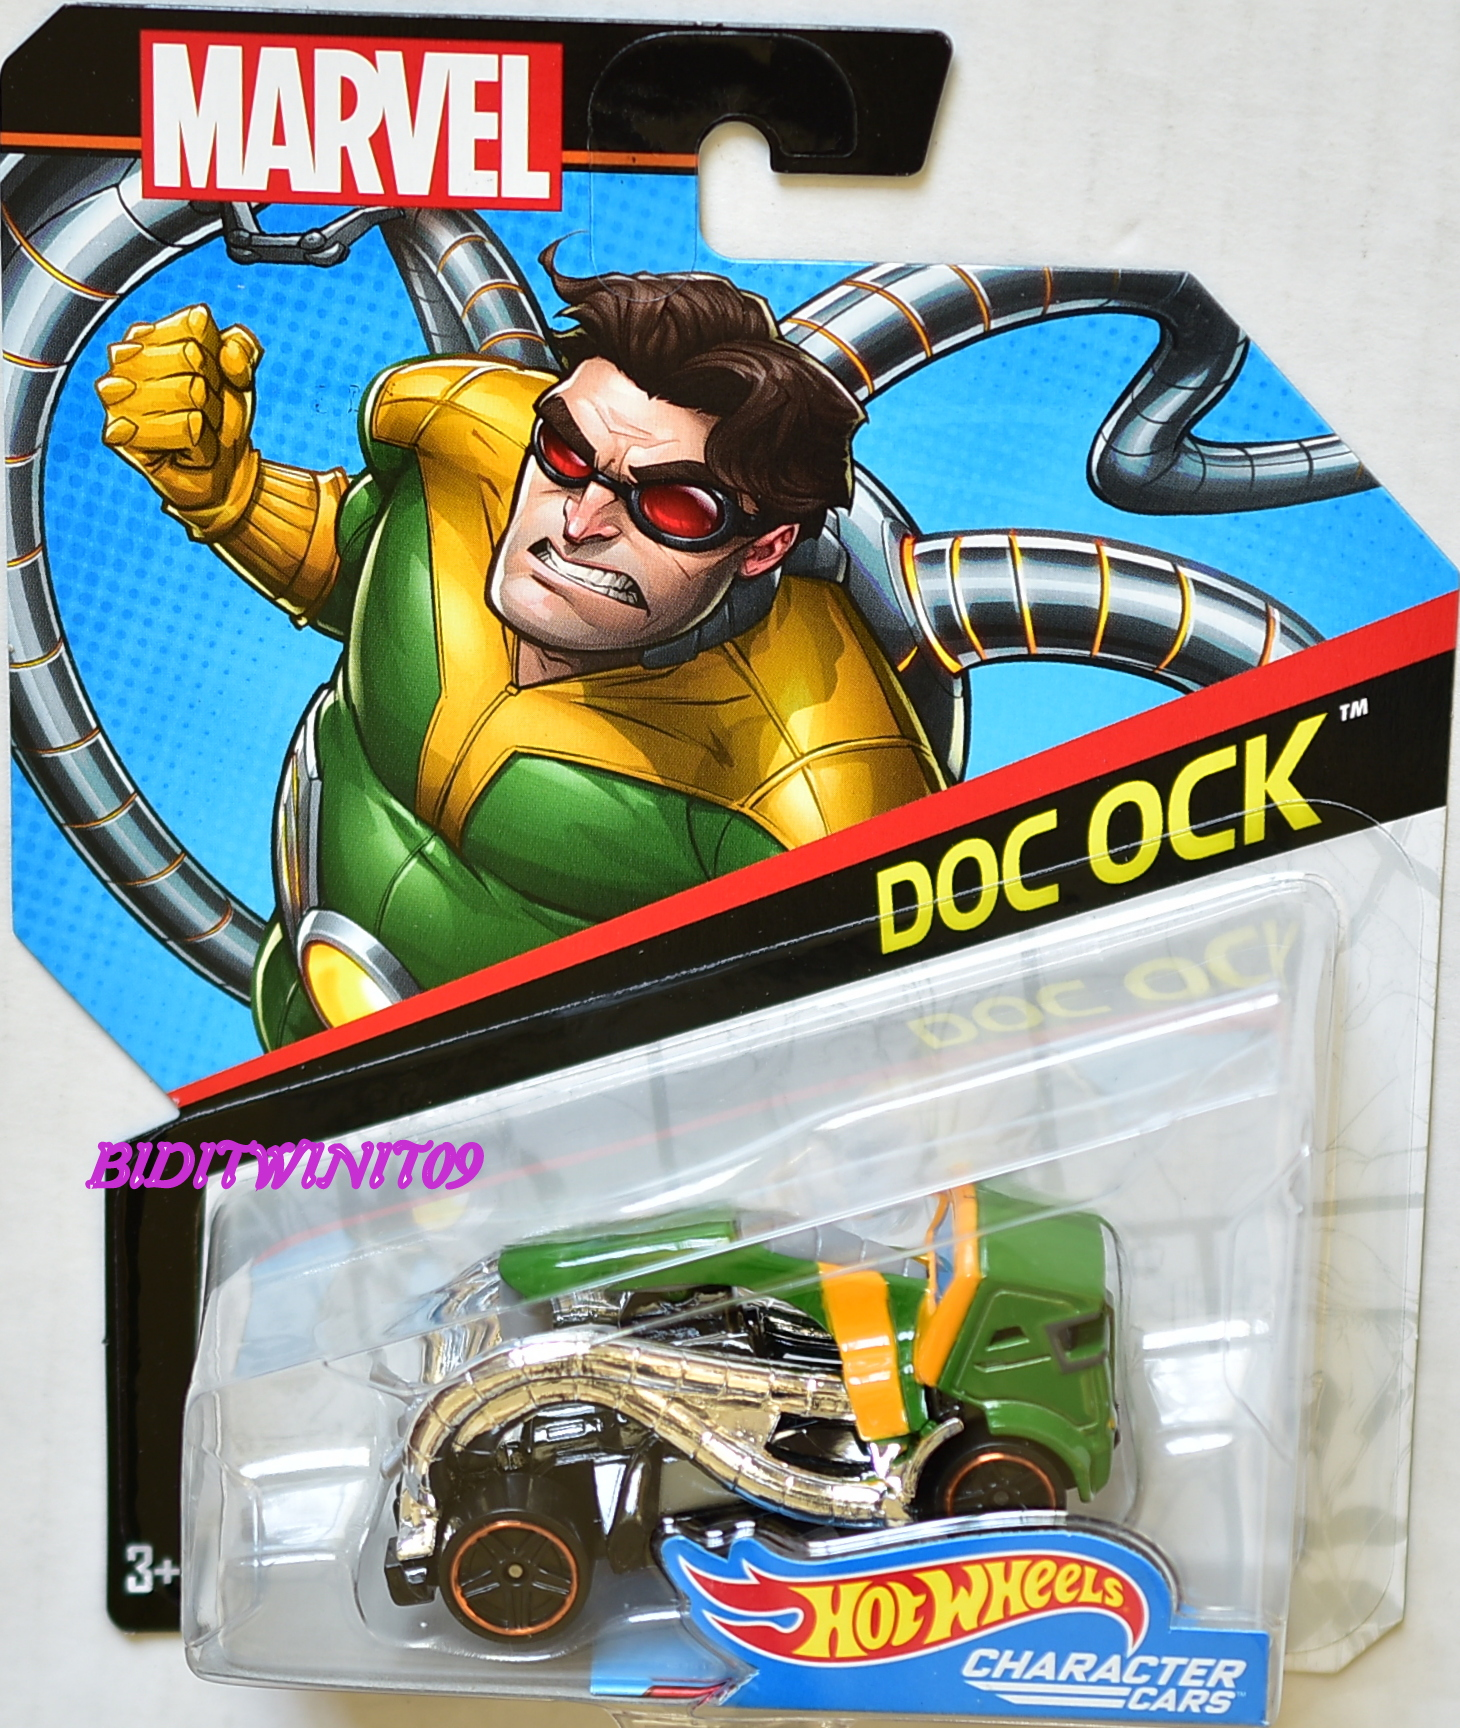 HOT WHEELS 2017 MARVEL CHARACTER CARS DOC OCK